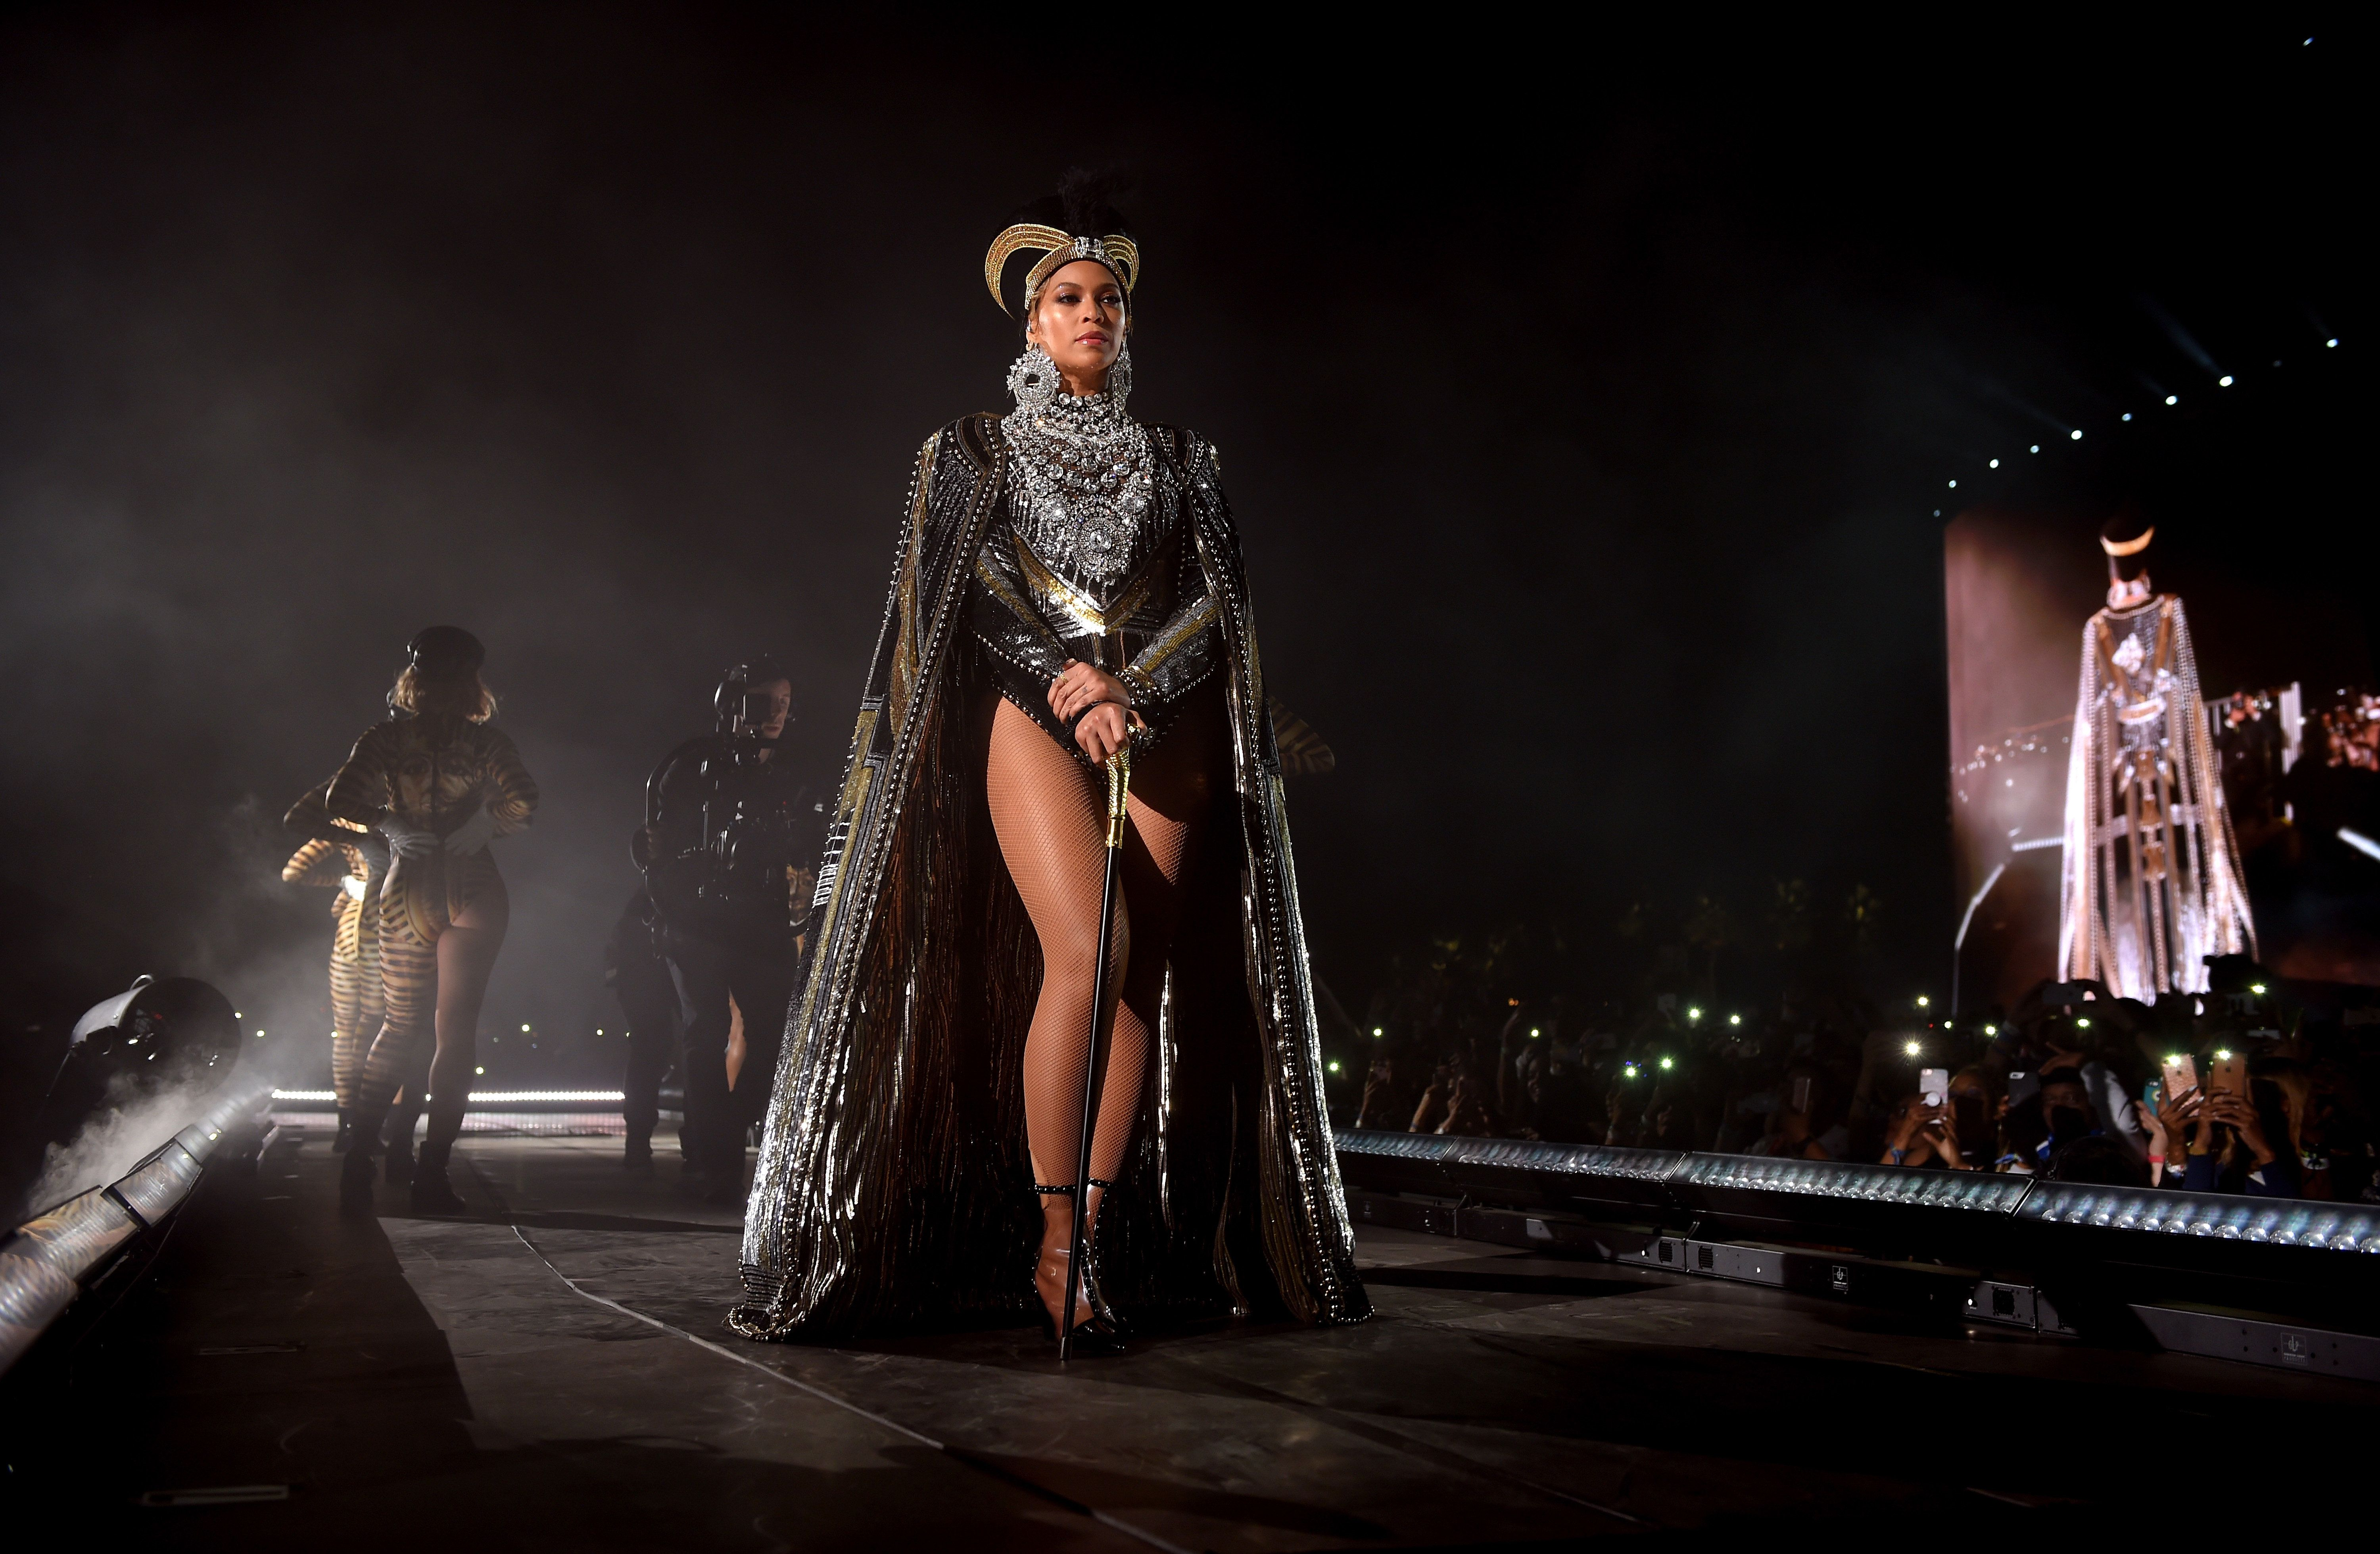 Beyoncé Brings Out J Balvin for 'Mi Gente' at Coachella